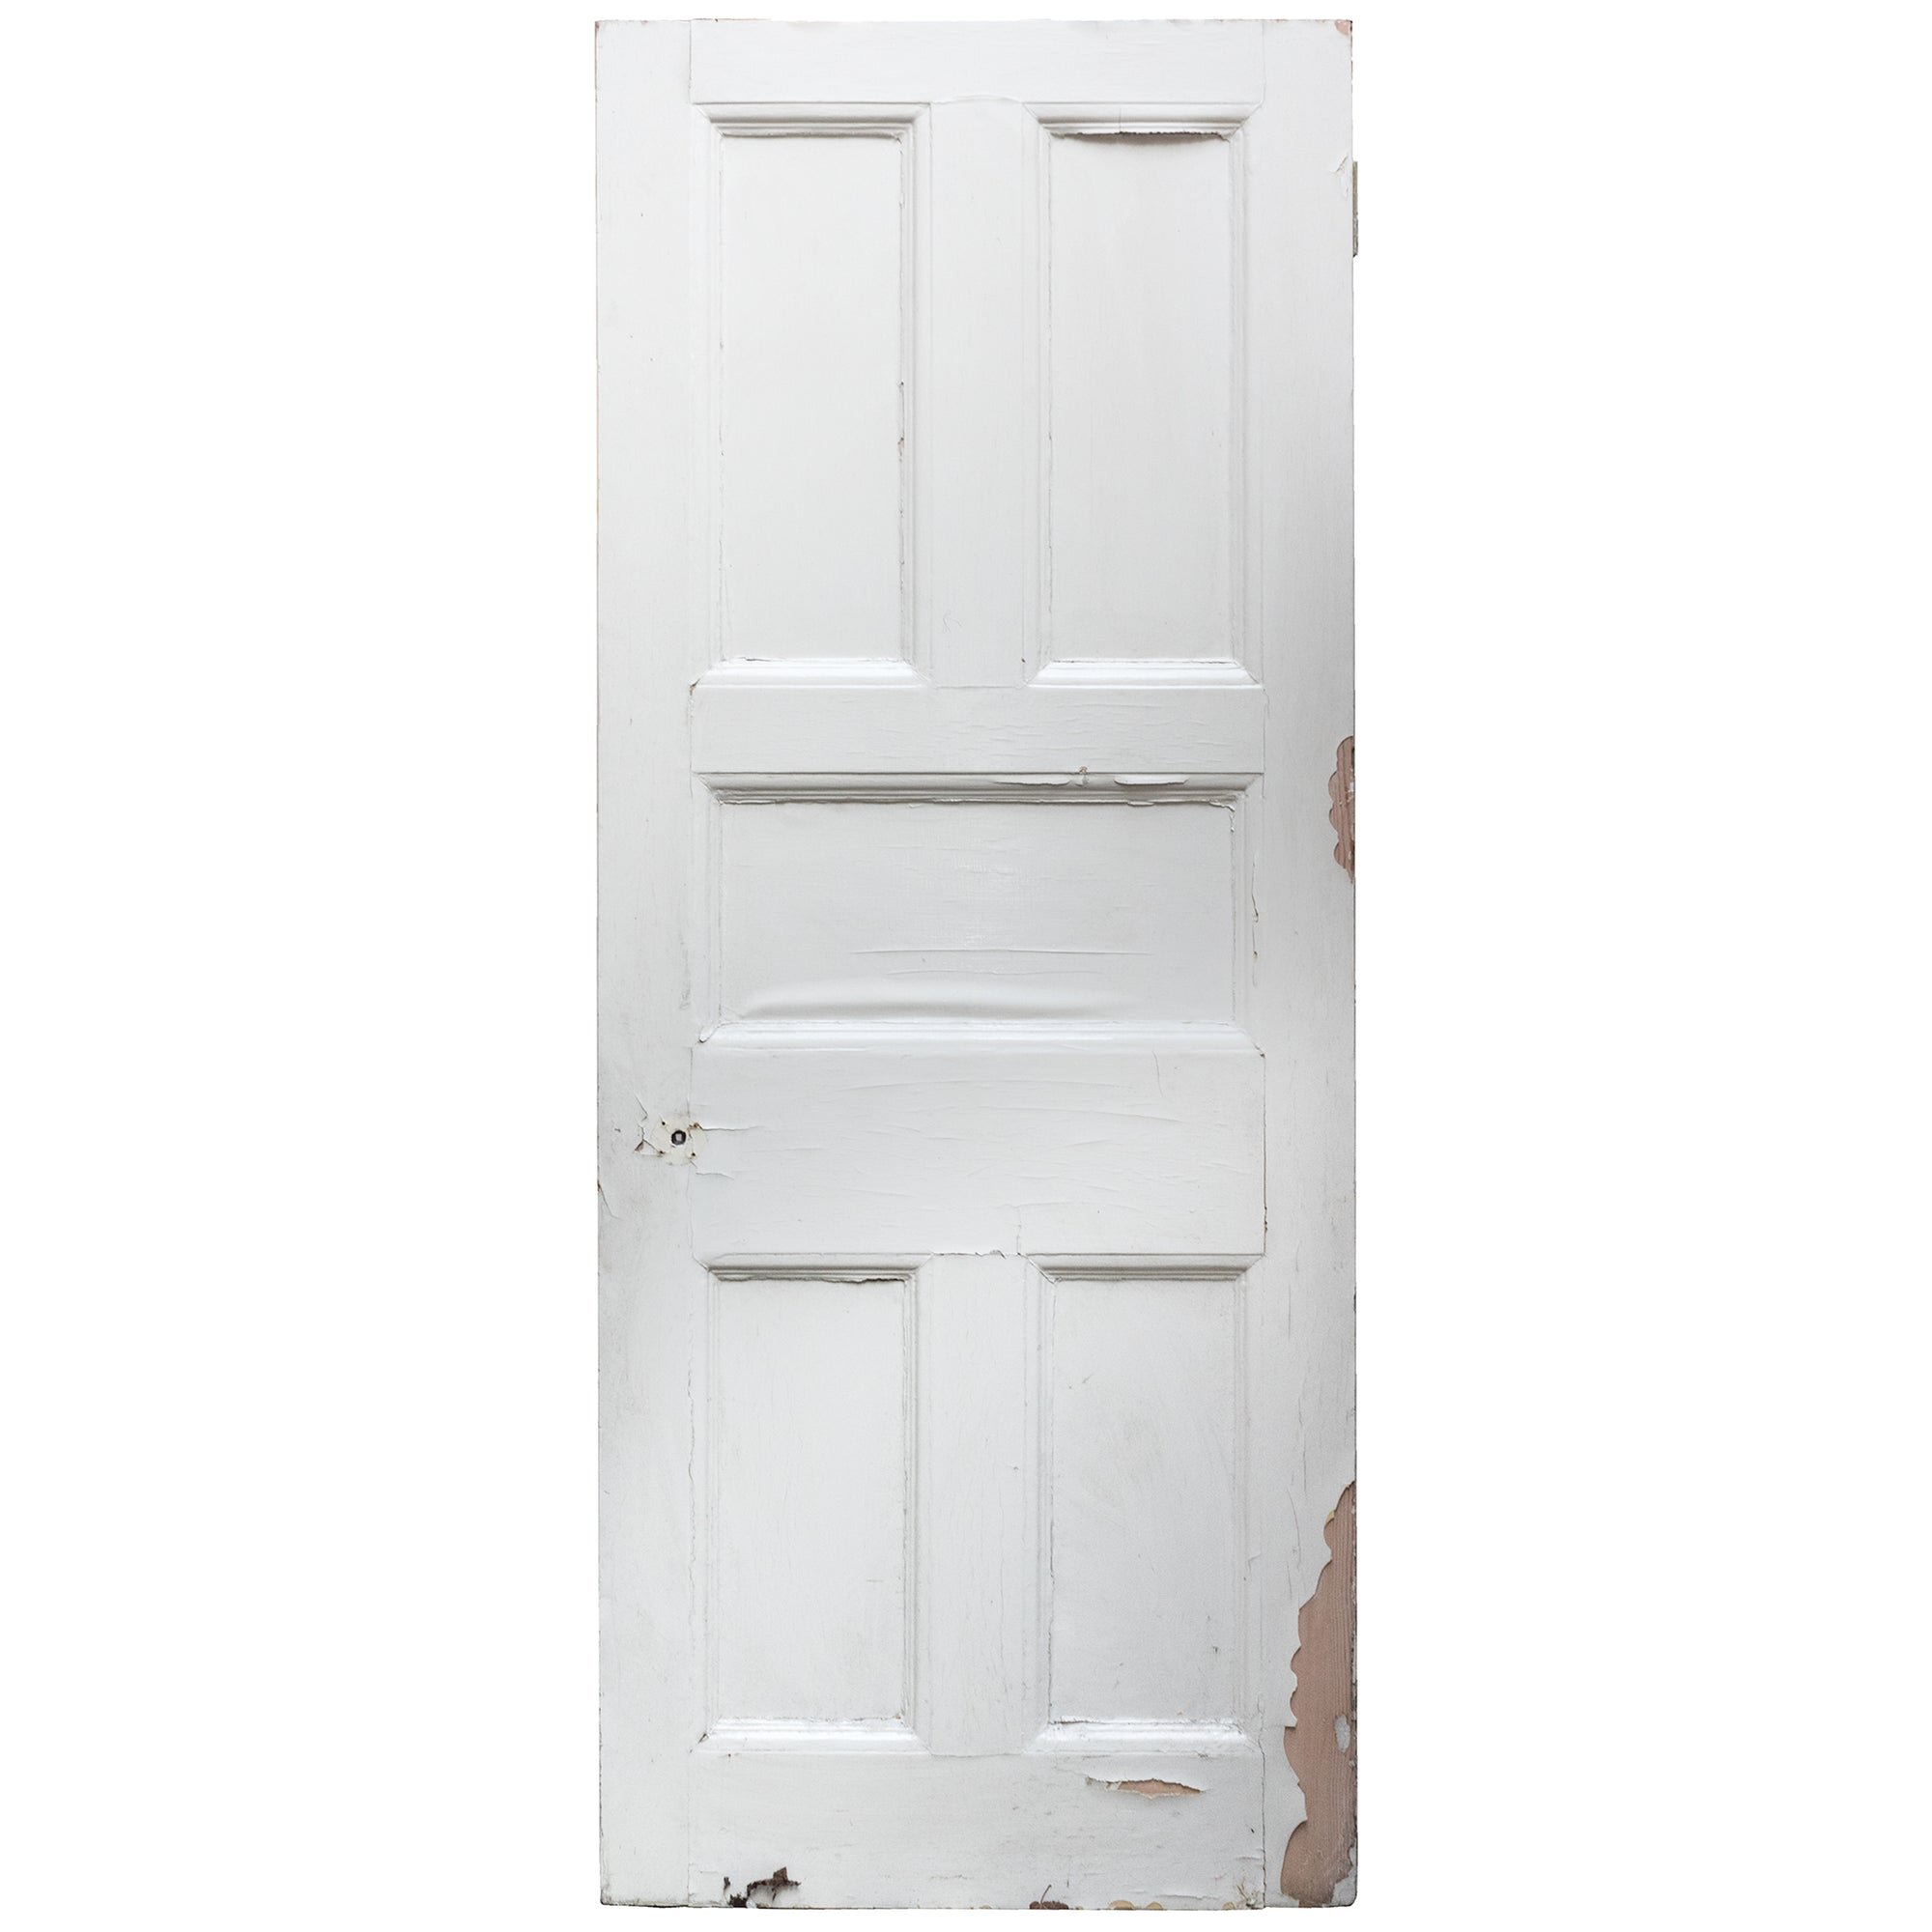 Antique Victorian Five Panel Door - 206.5cm x 79.5cm